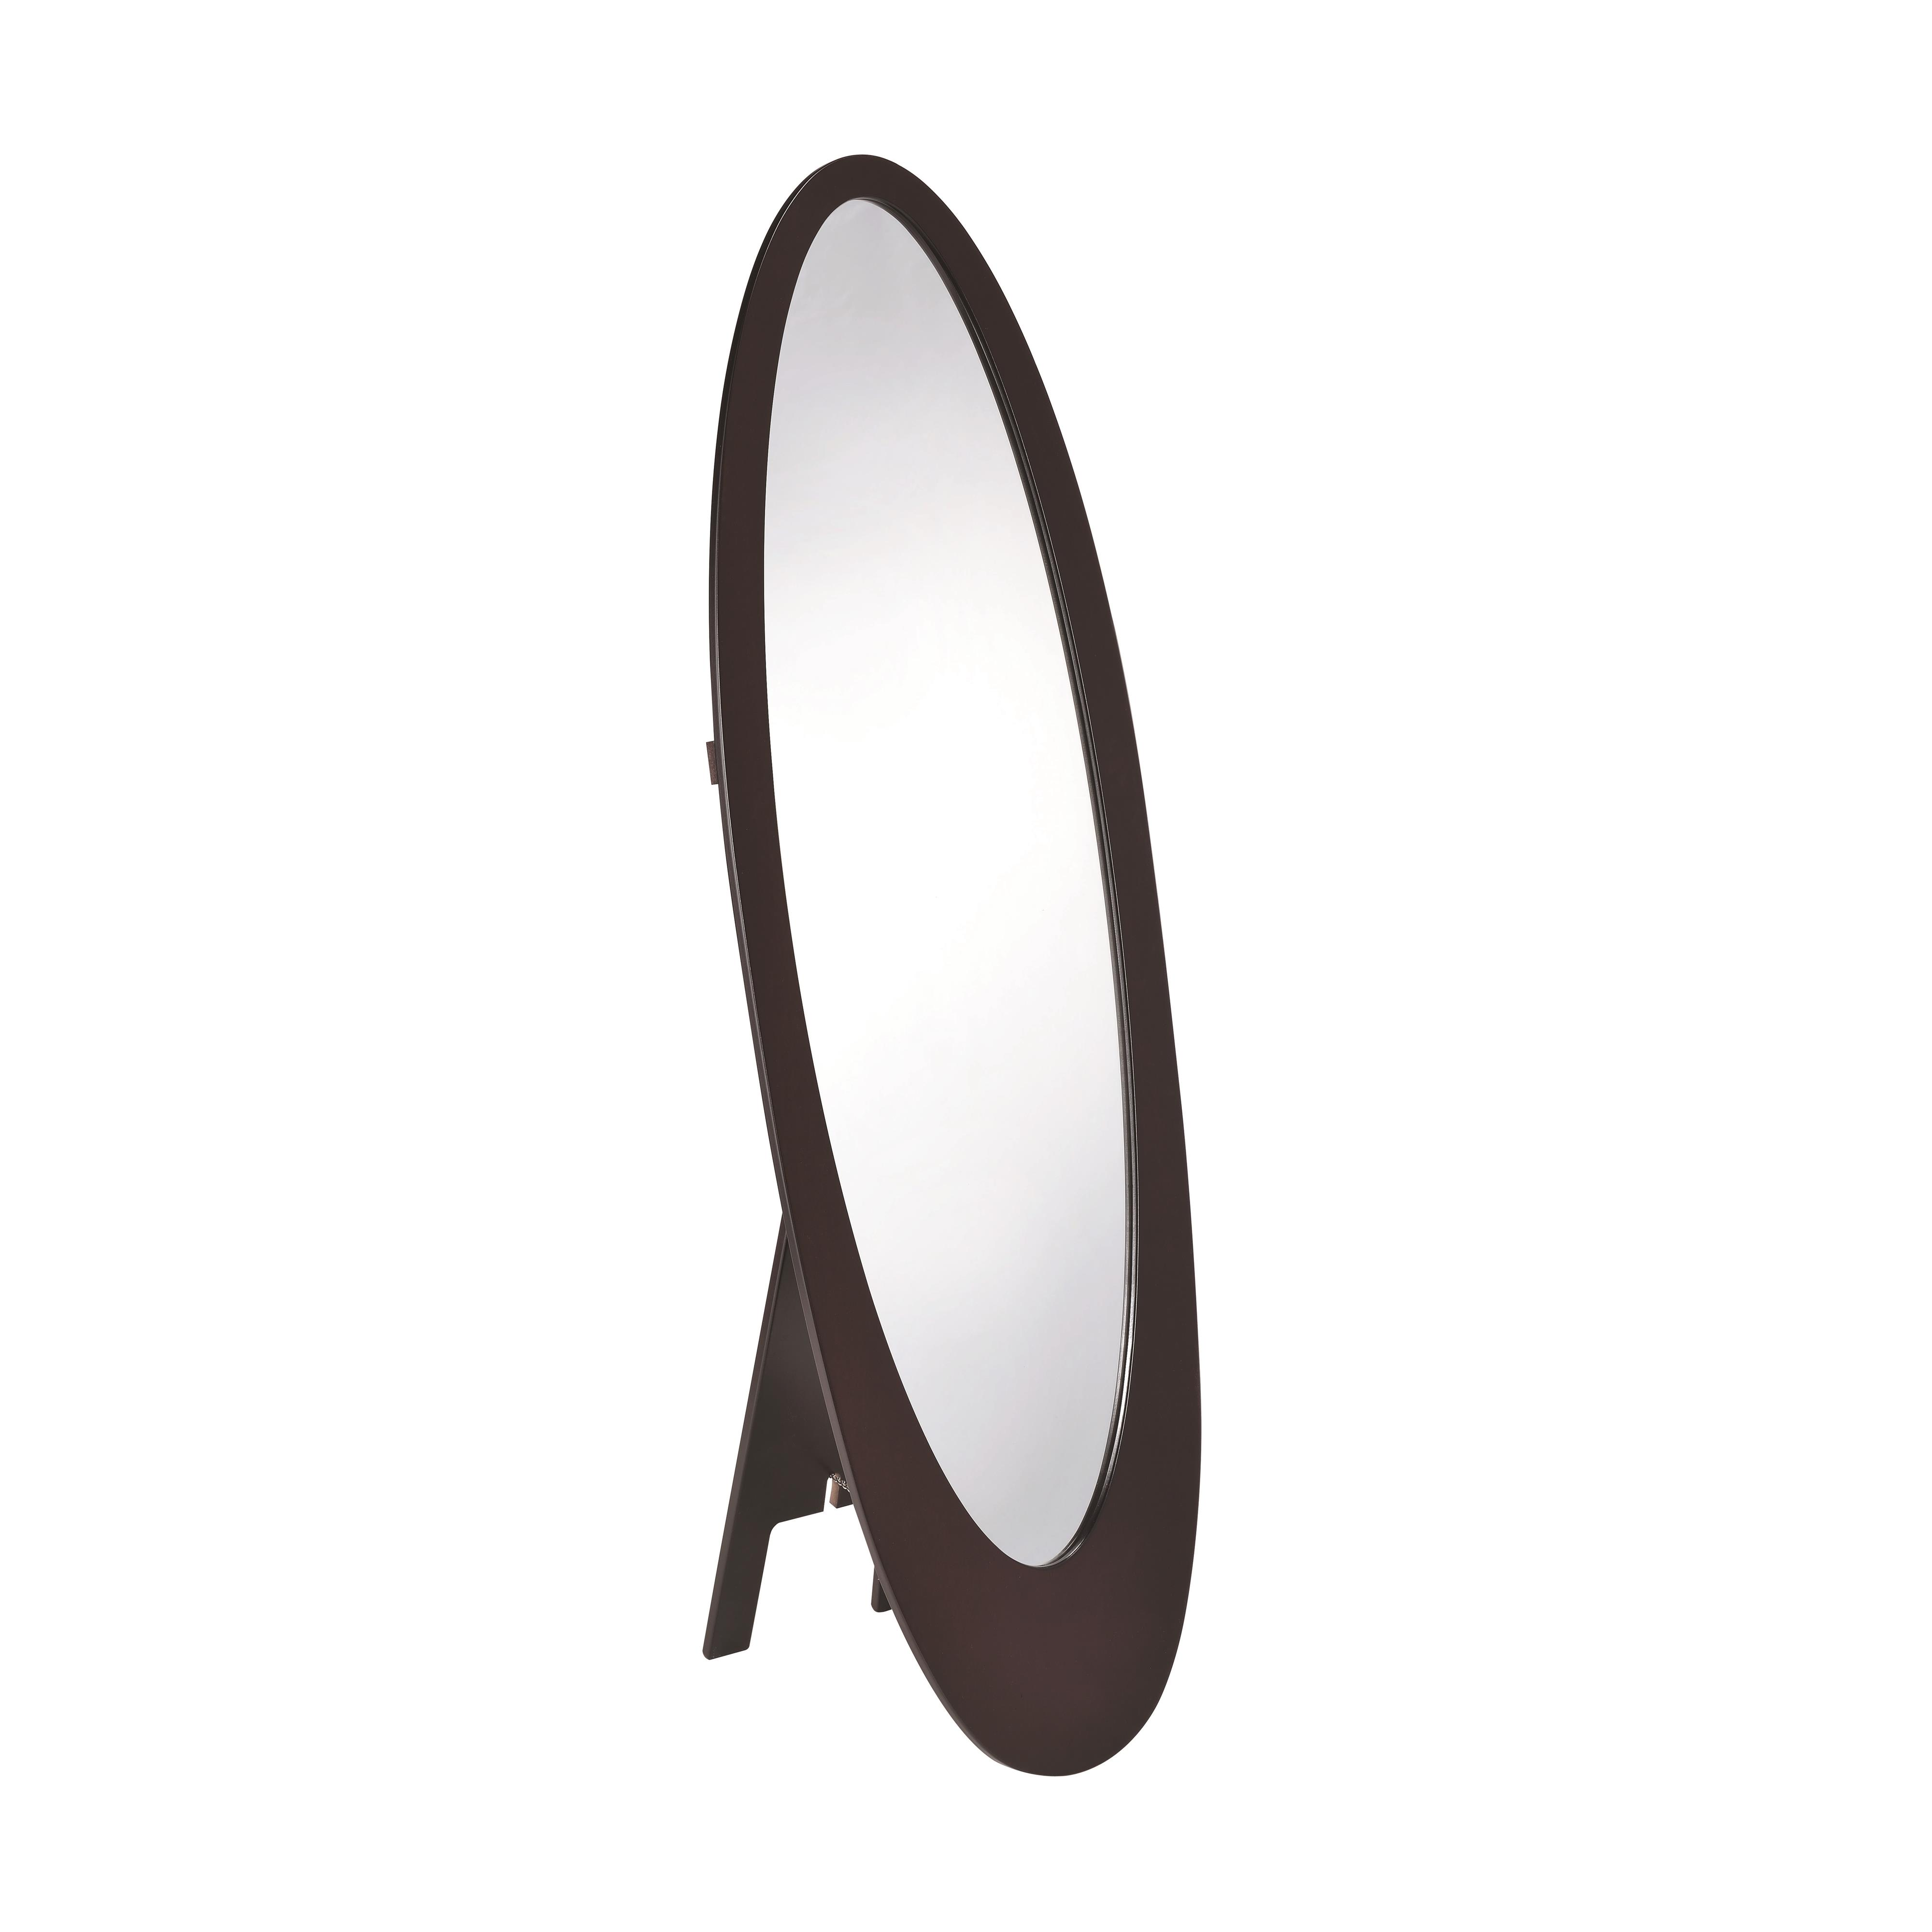 Coaster Accent Mirrors Mirror - Item Number: 901846